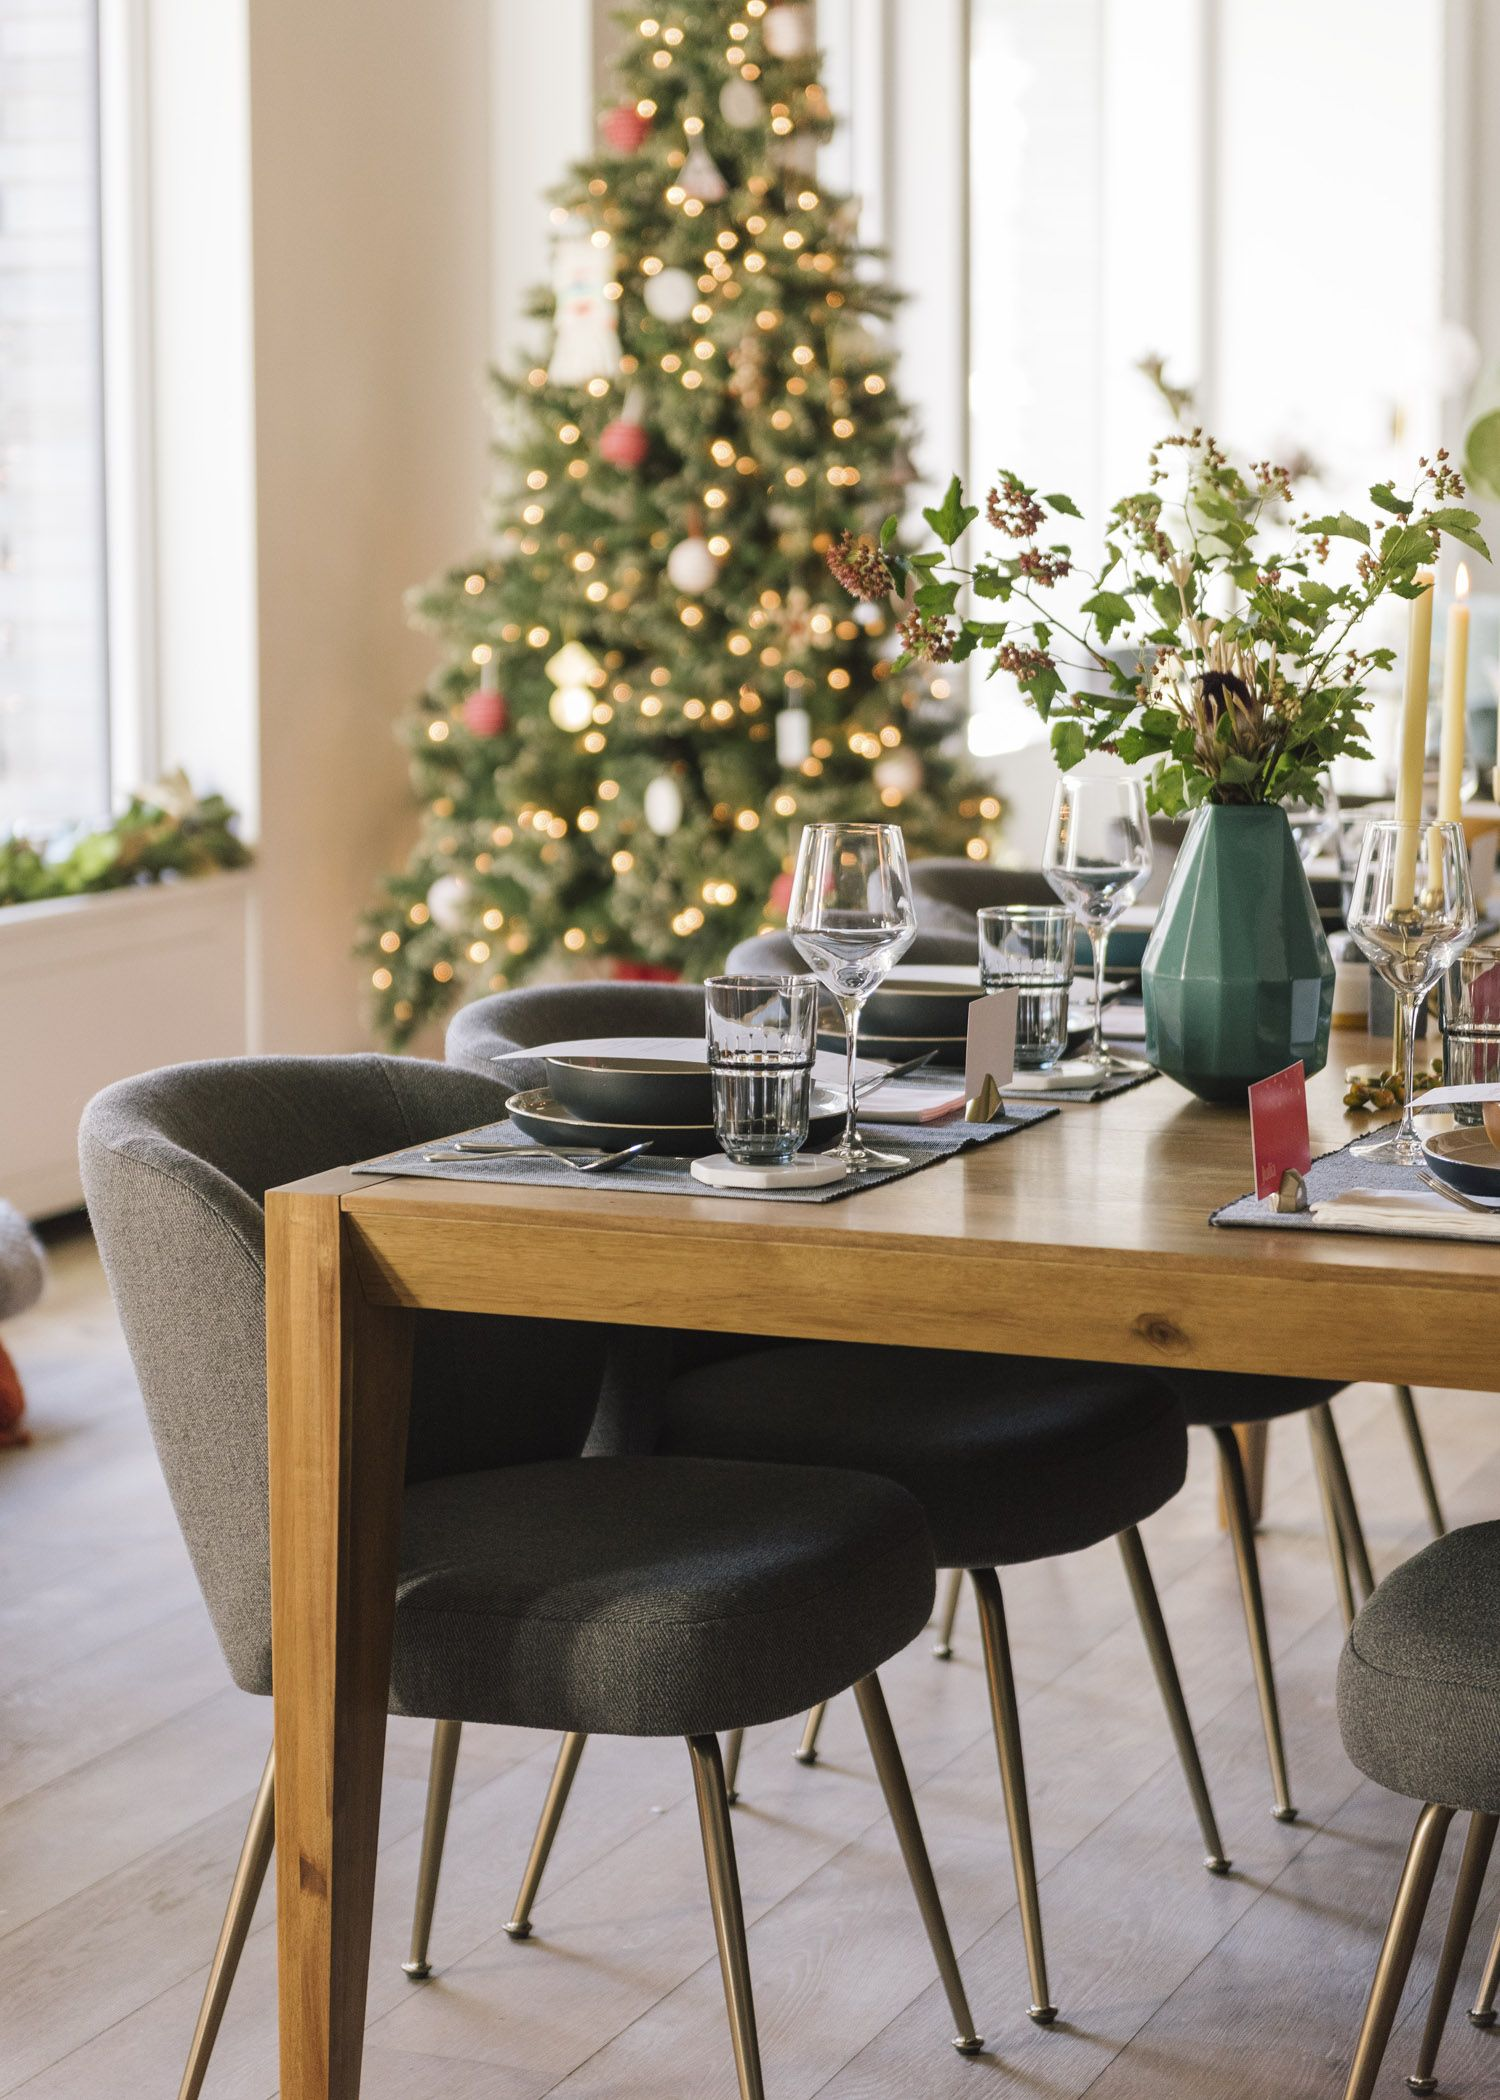 House Tour A Modern Coastal Oasis For Leesa Mattress Co Founder David Wolfe Front Main Small Dining Table New York Loft Home Decor